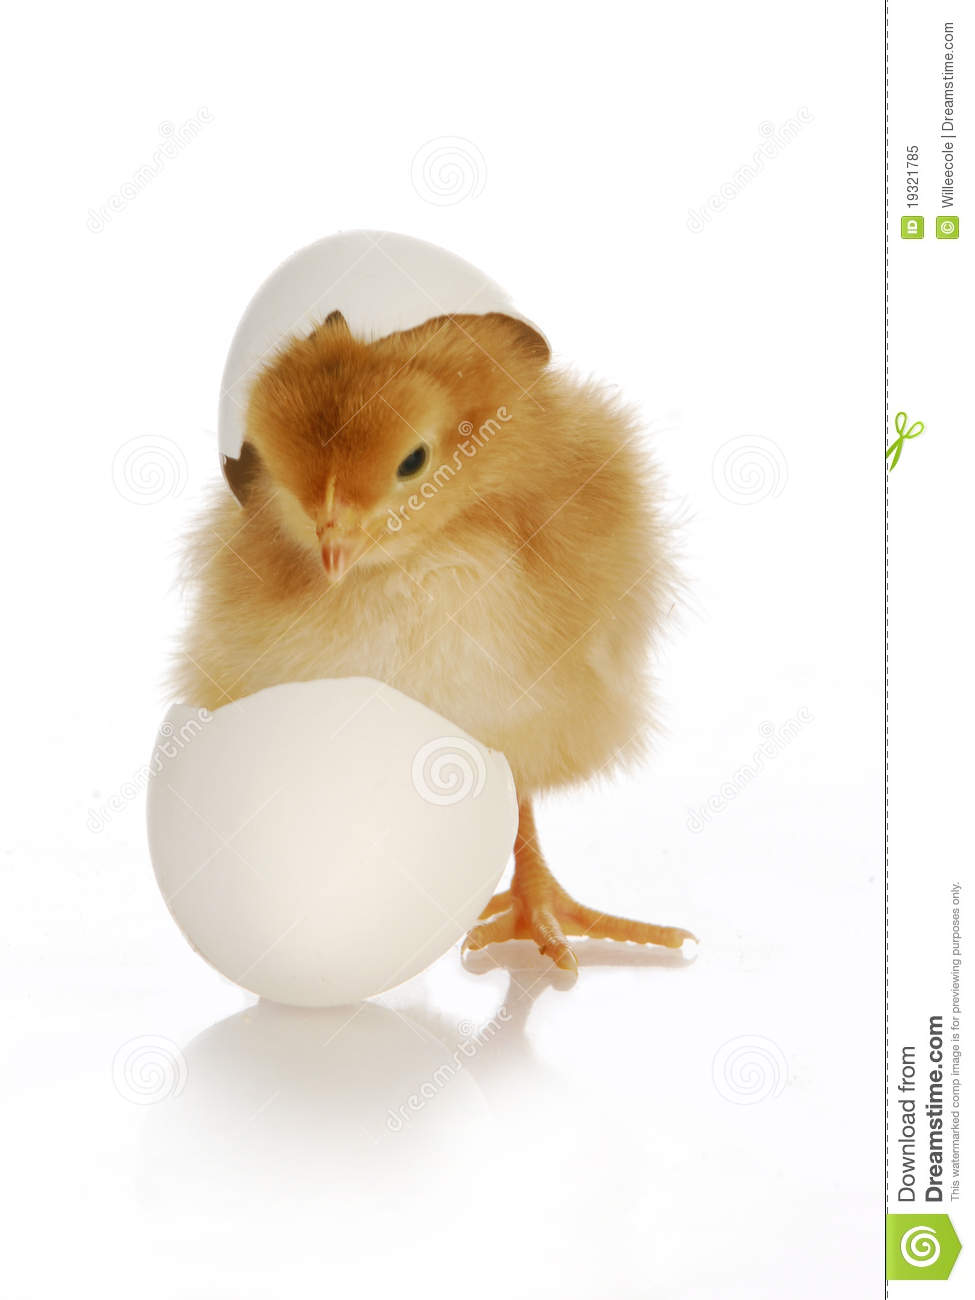 Chick hatching - cute newborn chick coming out of the egg on white ...